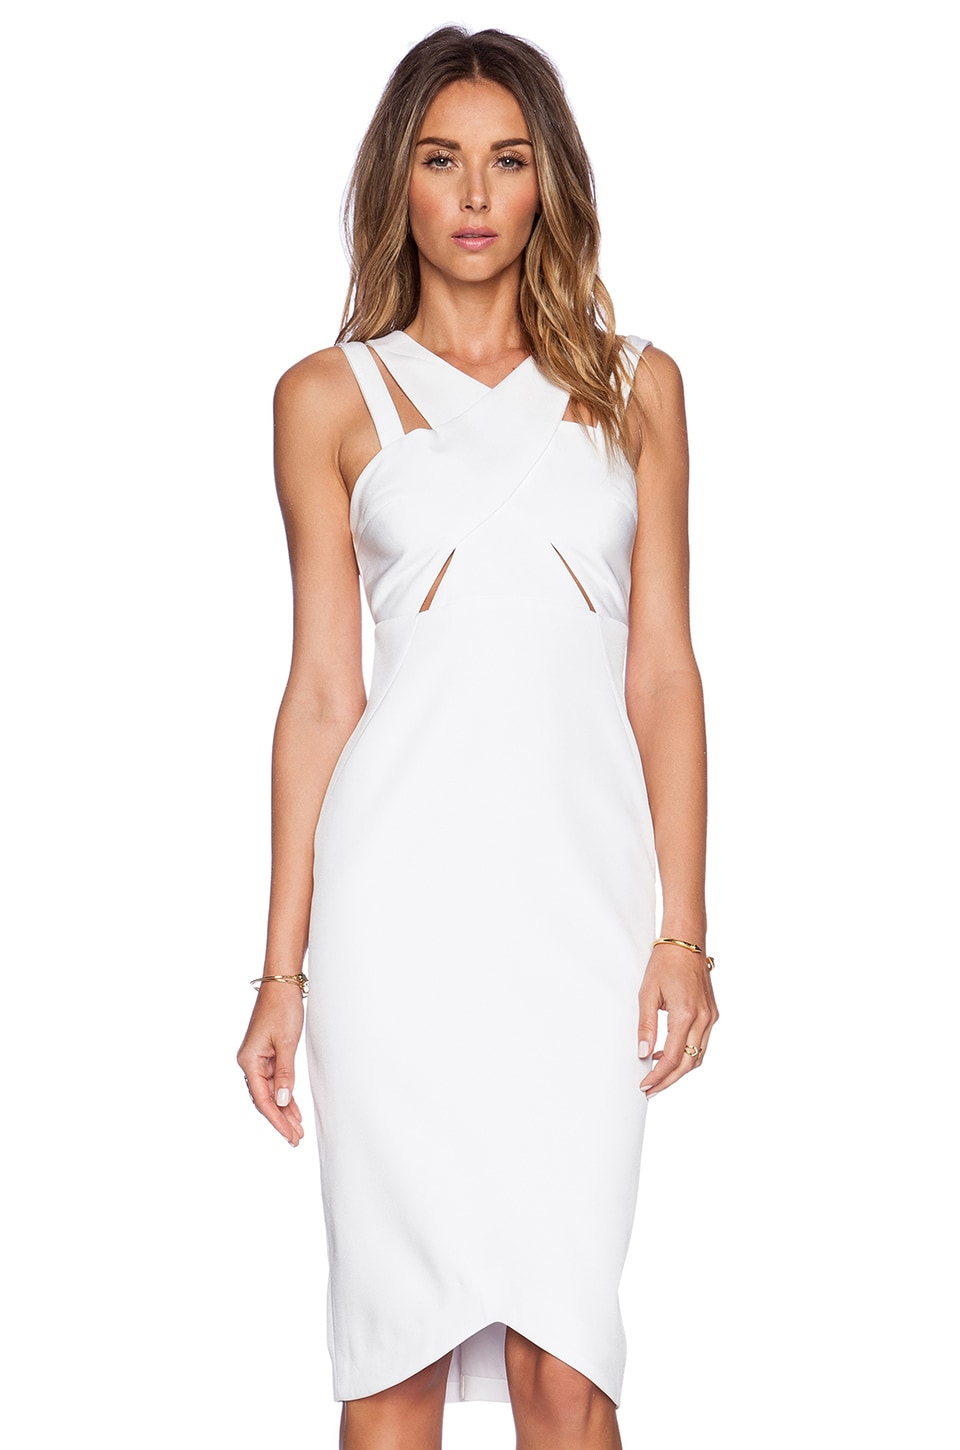 STYLESTALKER Parallel Dress in White